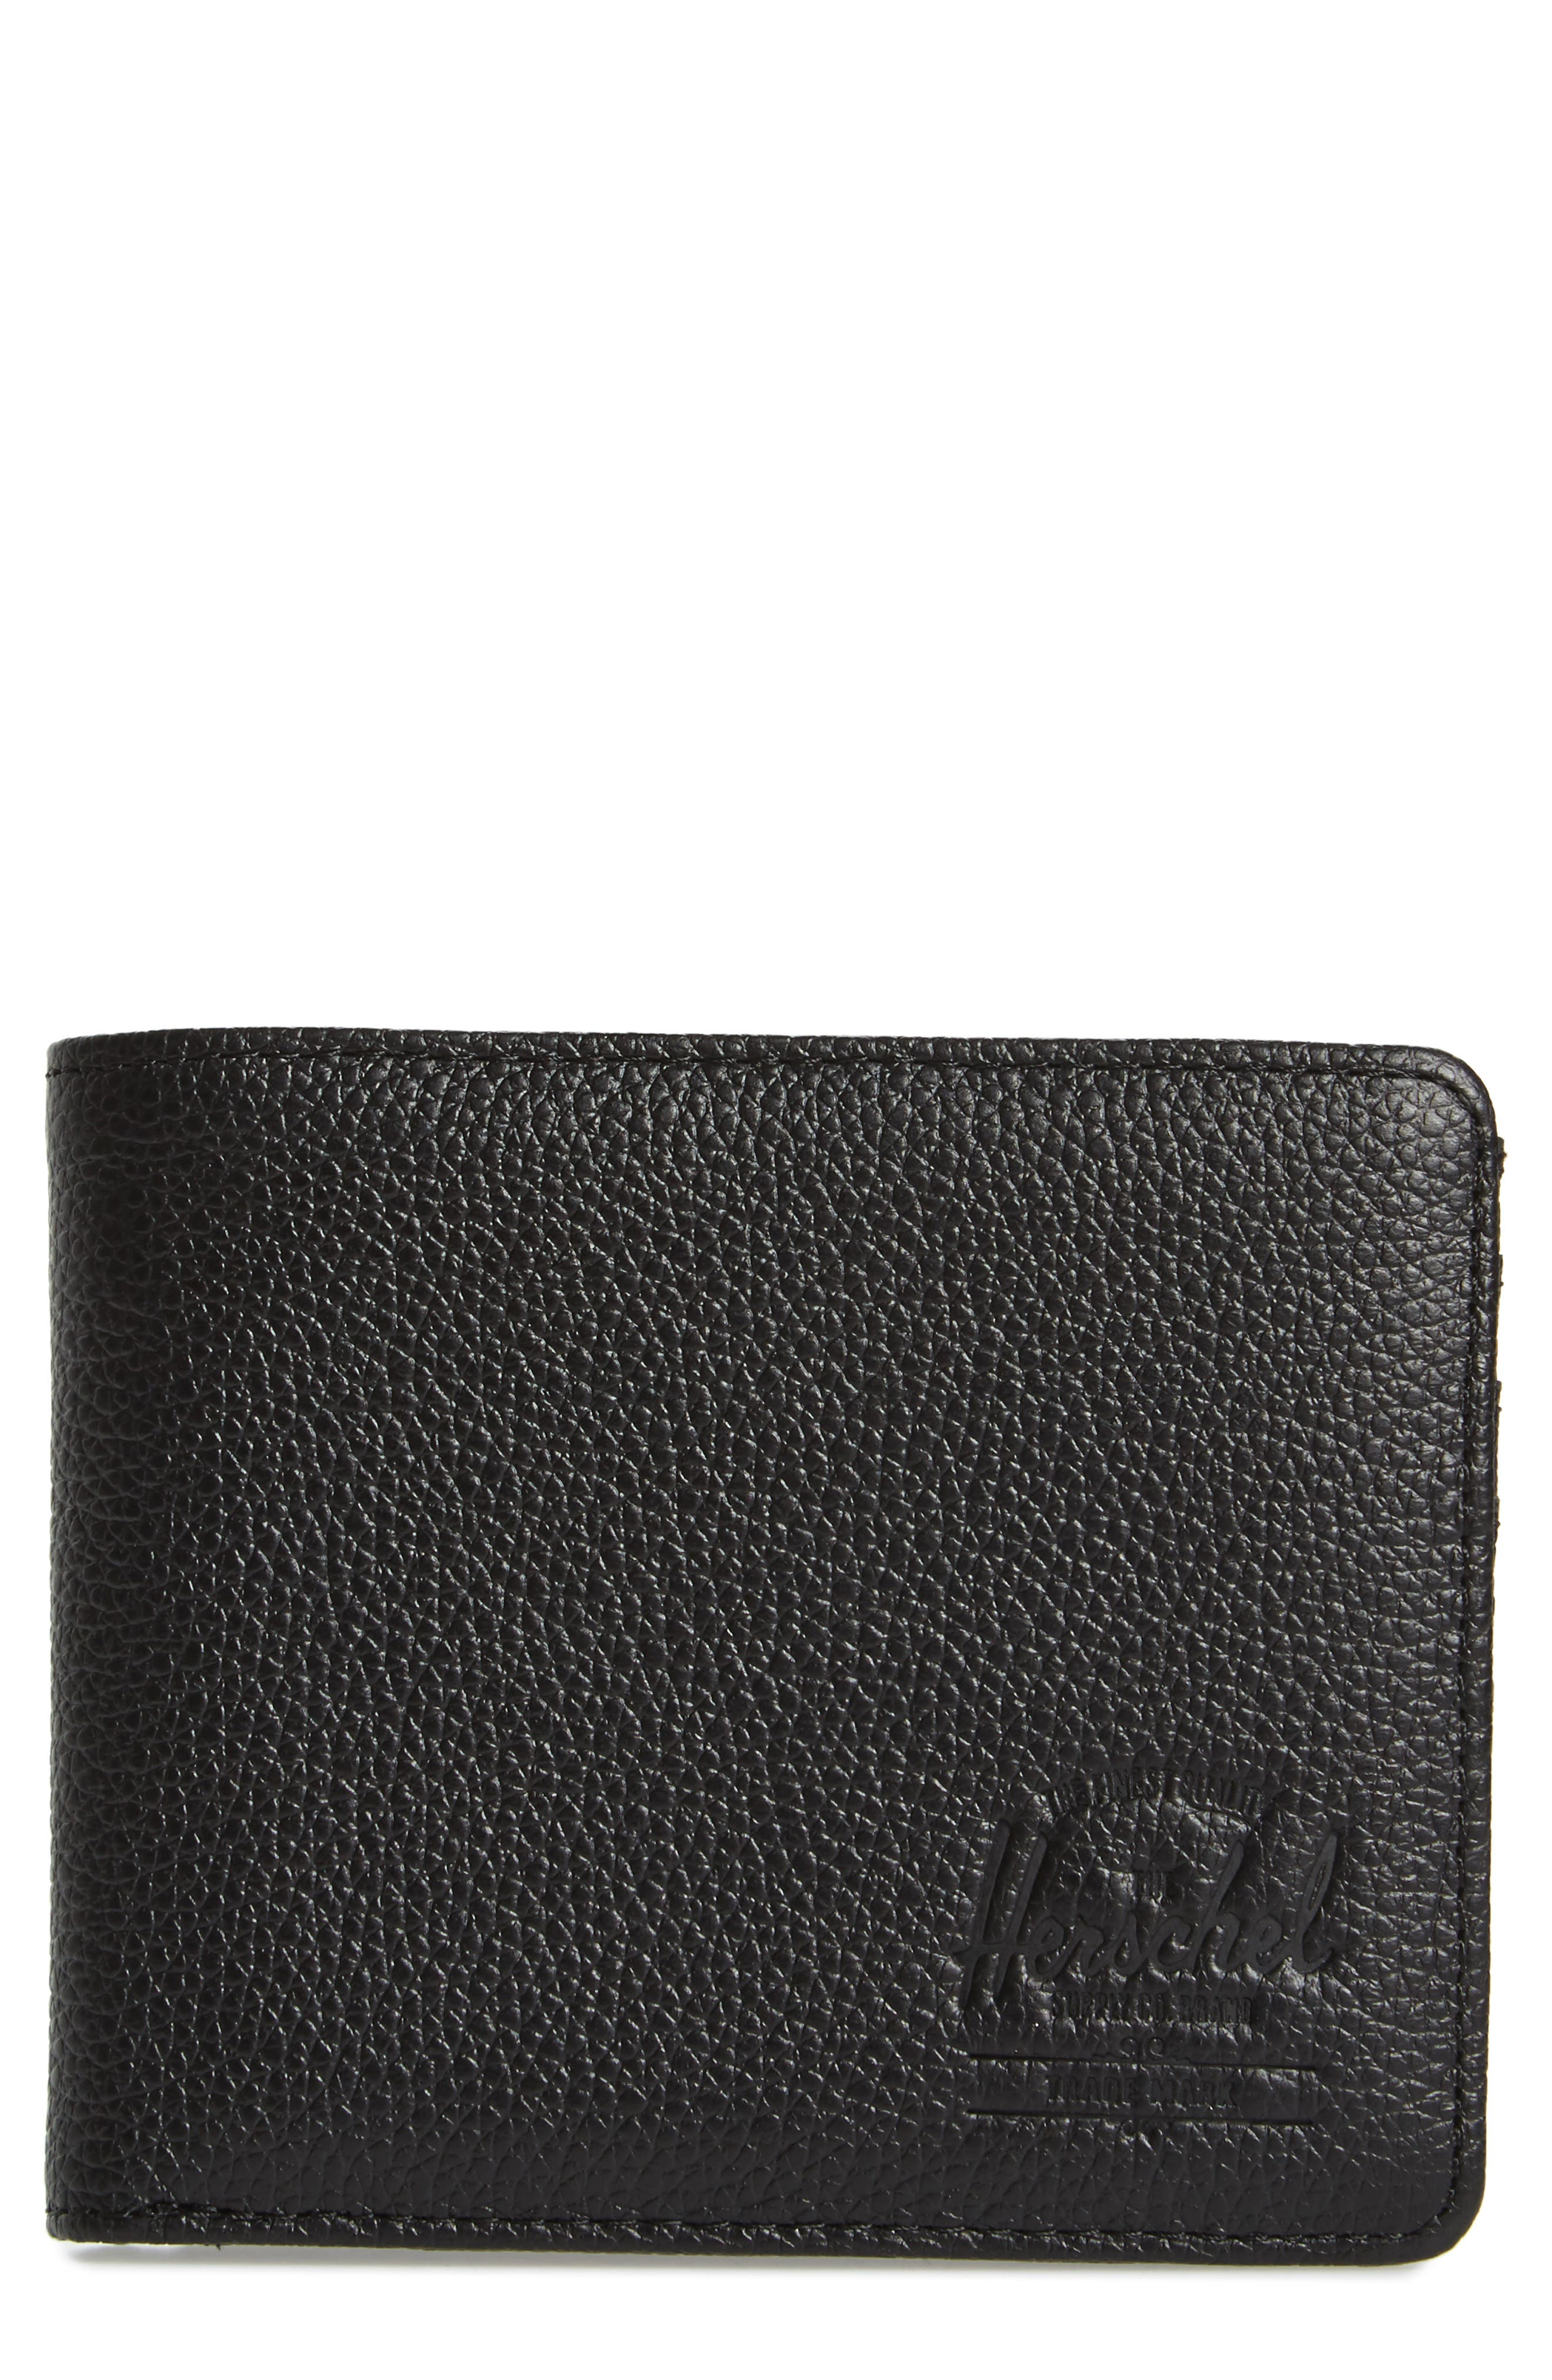 Herschel Supply Co. Tile Roy Leather Bifold Wallet